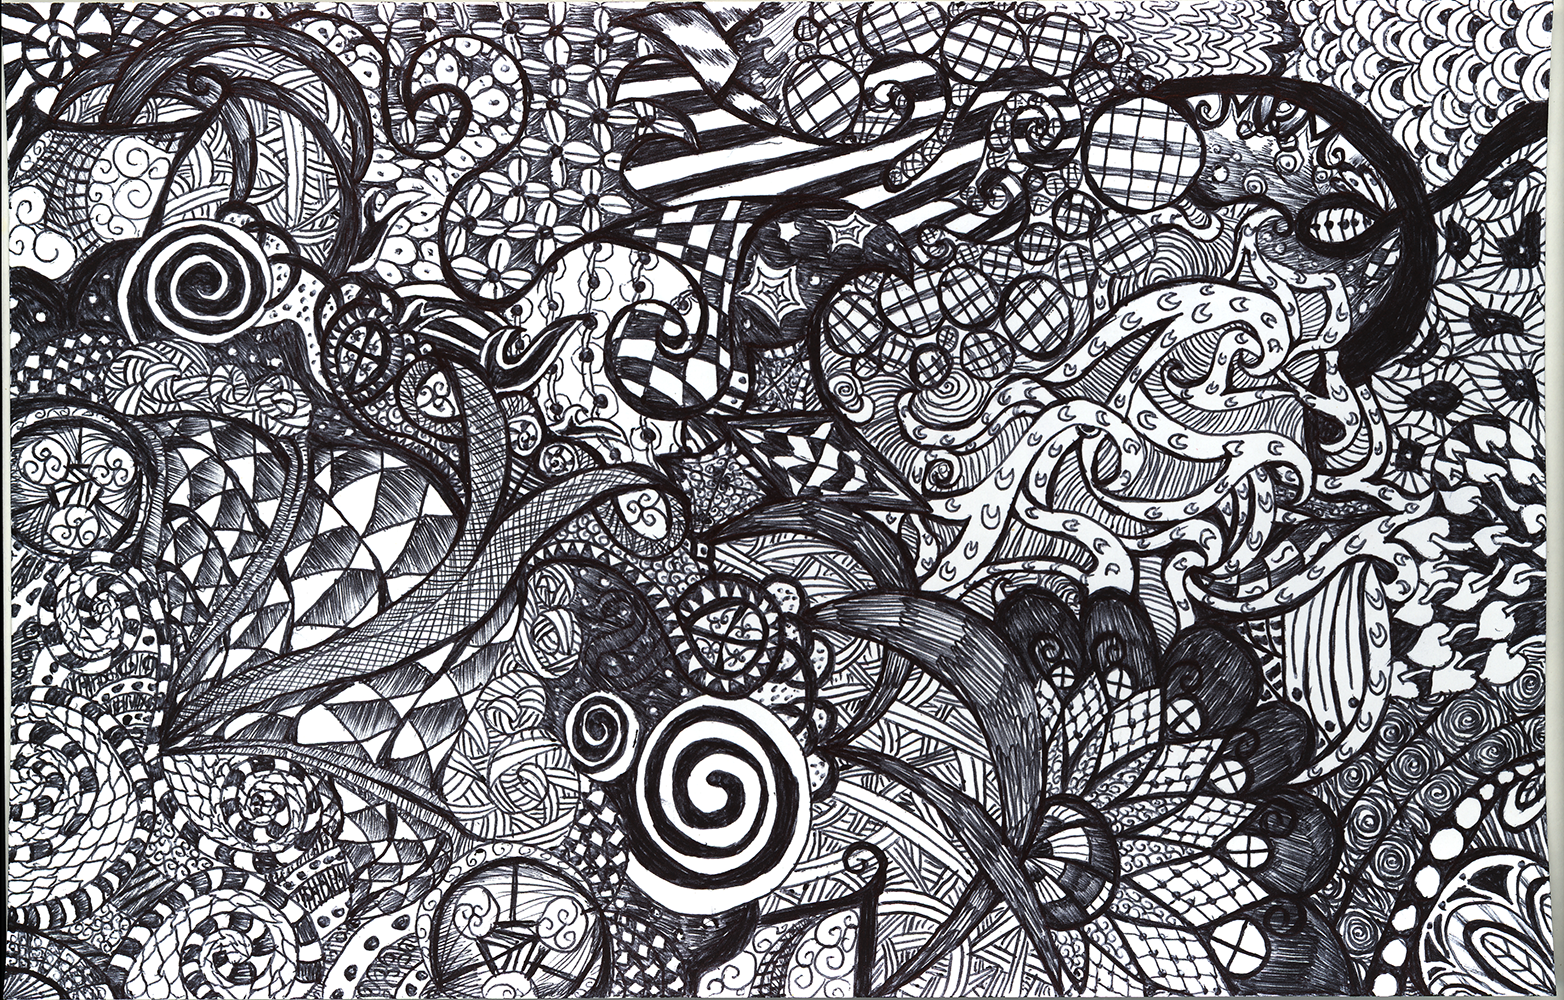 Zentangle by m0rganrebecca